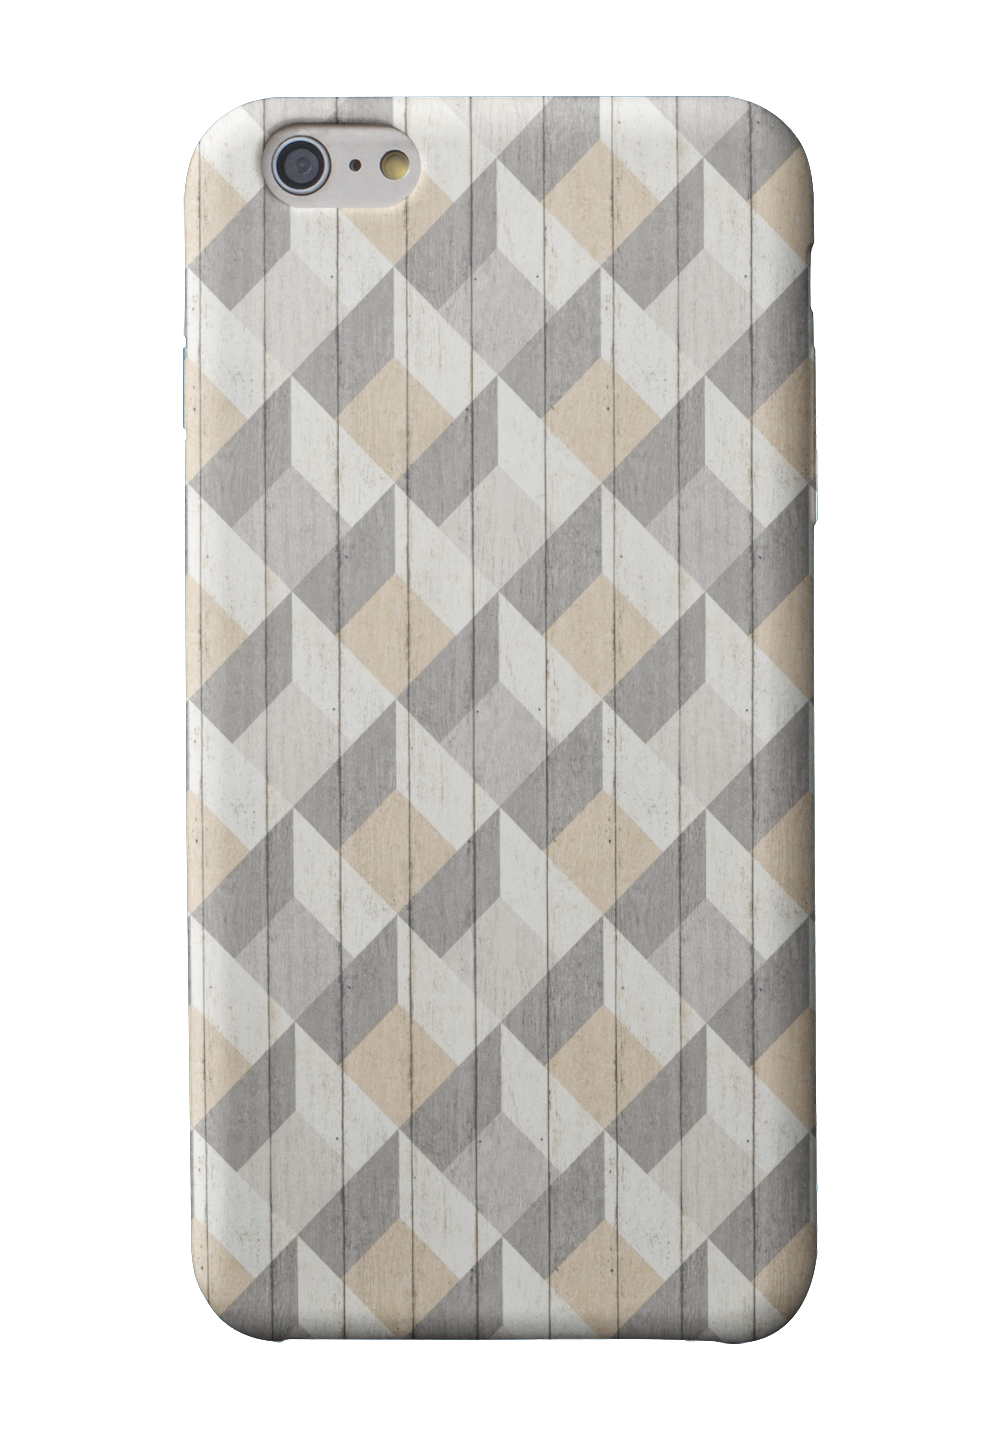 Pattern Phone Case 36 - ateedude